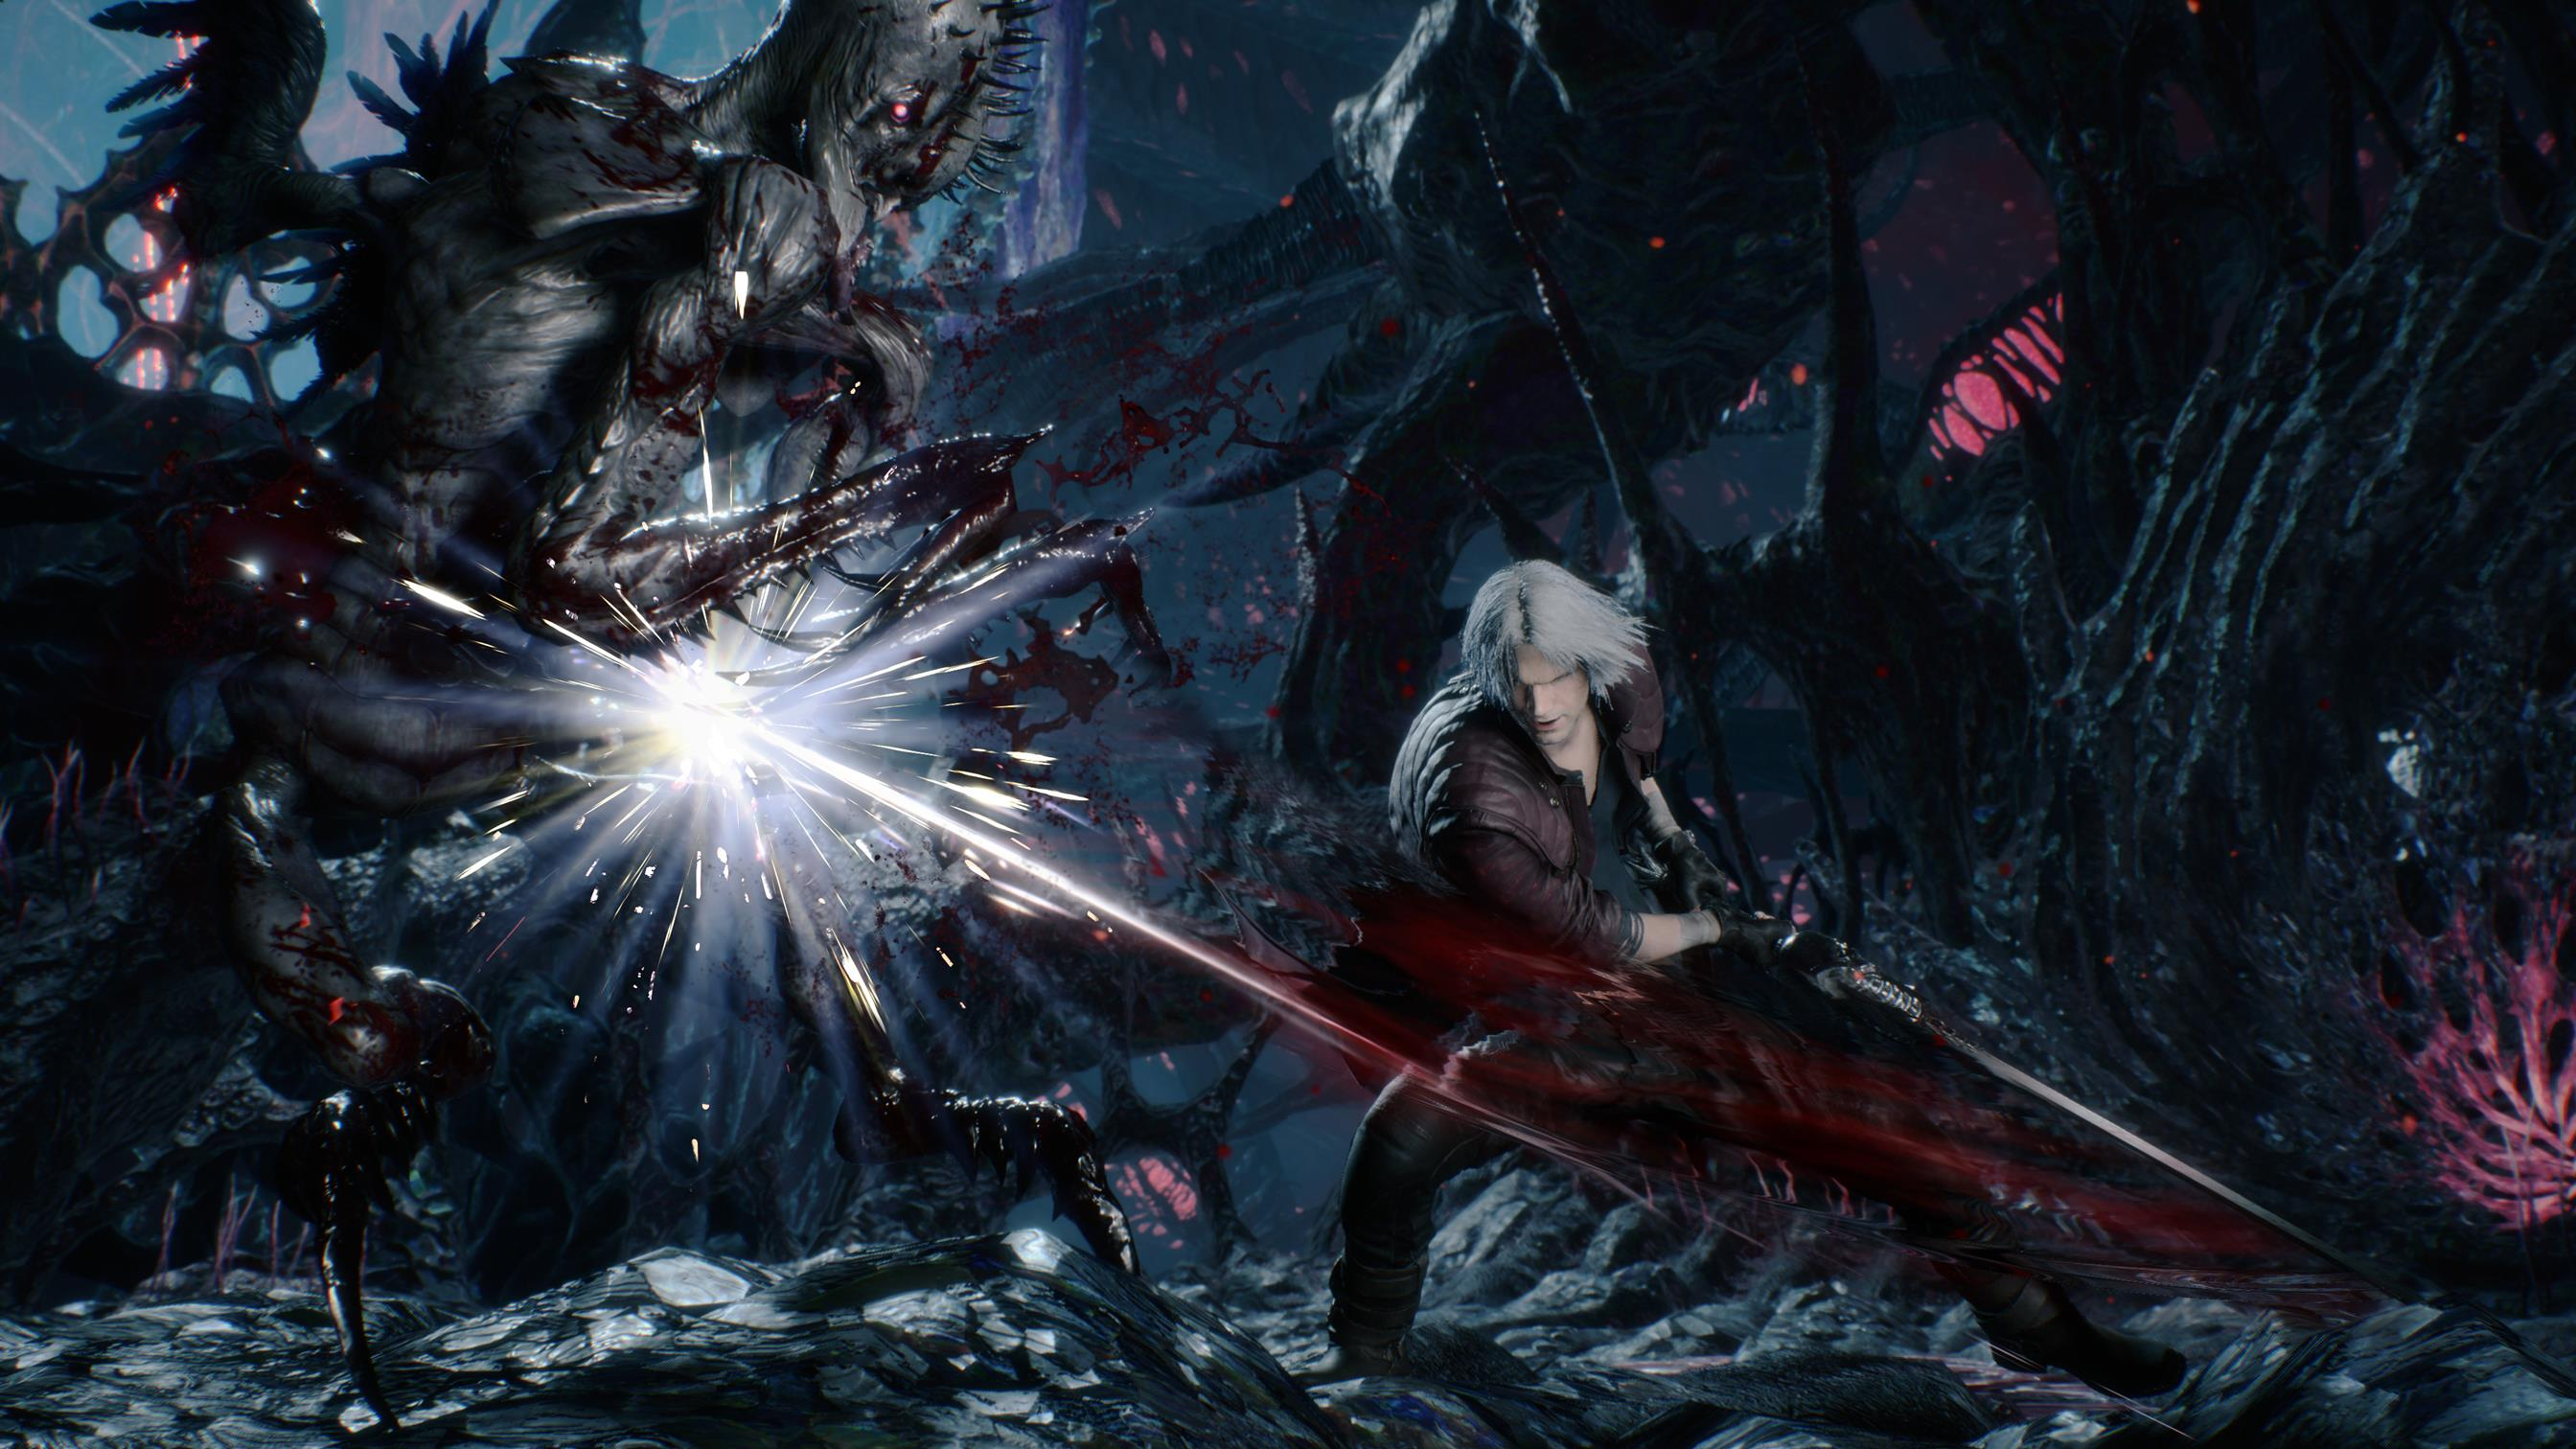 Capcom reveals new playable character for Devil May Cry 5